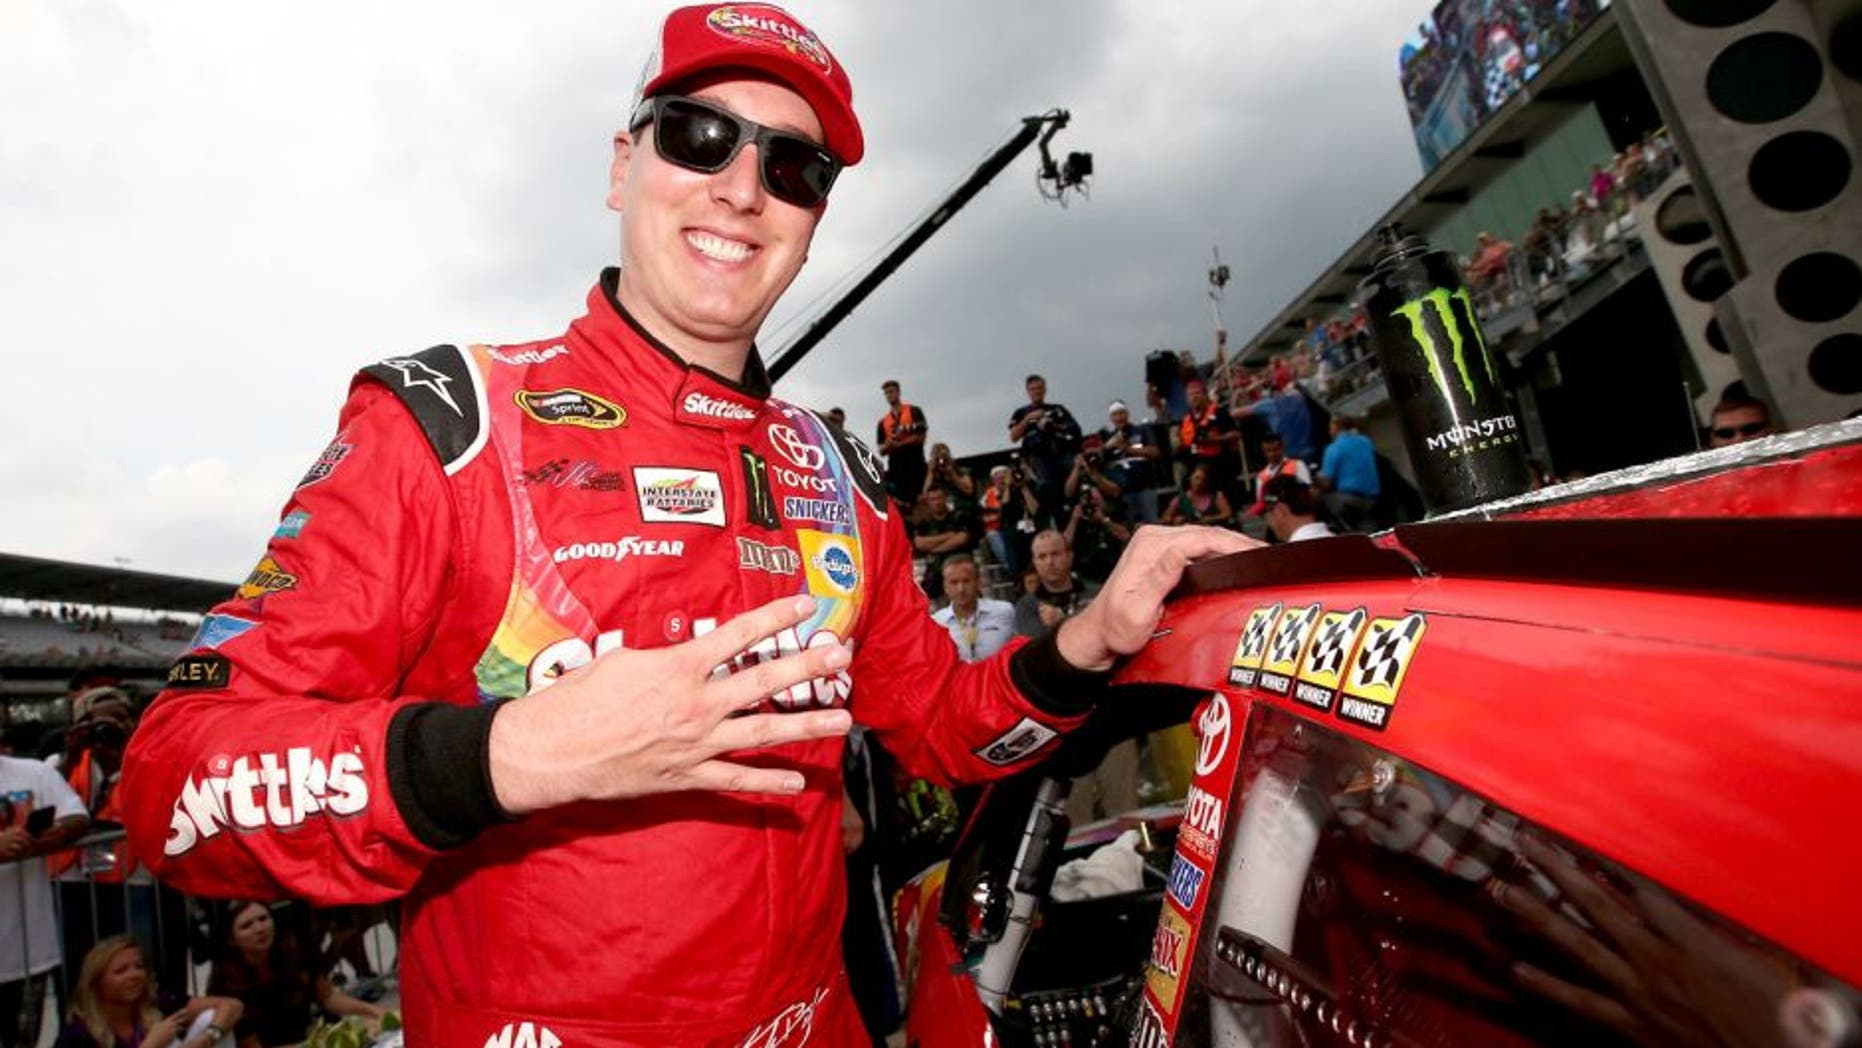 INDIANAPOLIS, IN - JULY 26: Kyle Busch, driver of the #18 Skittles Toyota, places the winner's decal in Victory Lane after winning the NASCAR Sprint Cup Series Crown Royal Presents the Jeff Kyle 400 at the Brickyard at Indianapolis Motor Speedway on July 26, 2015 in Indianapolis, Indiana. (Photo by Sean Gardner/NASCAR via Getty Images)